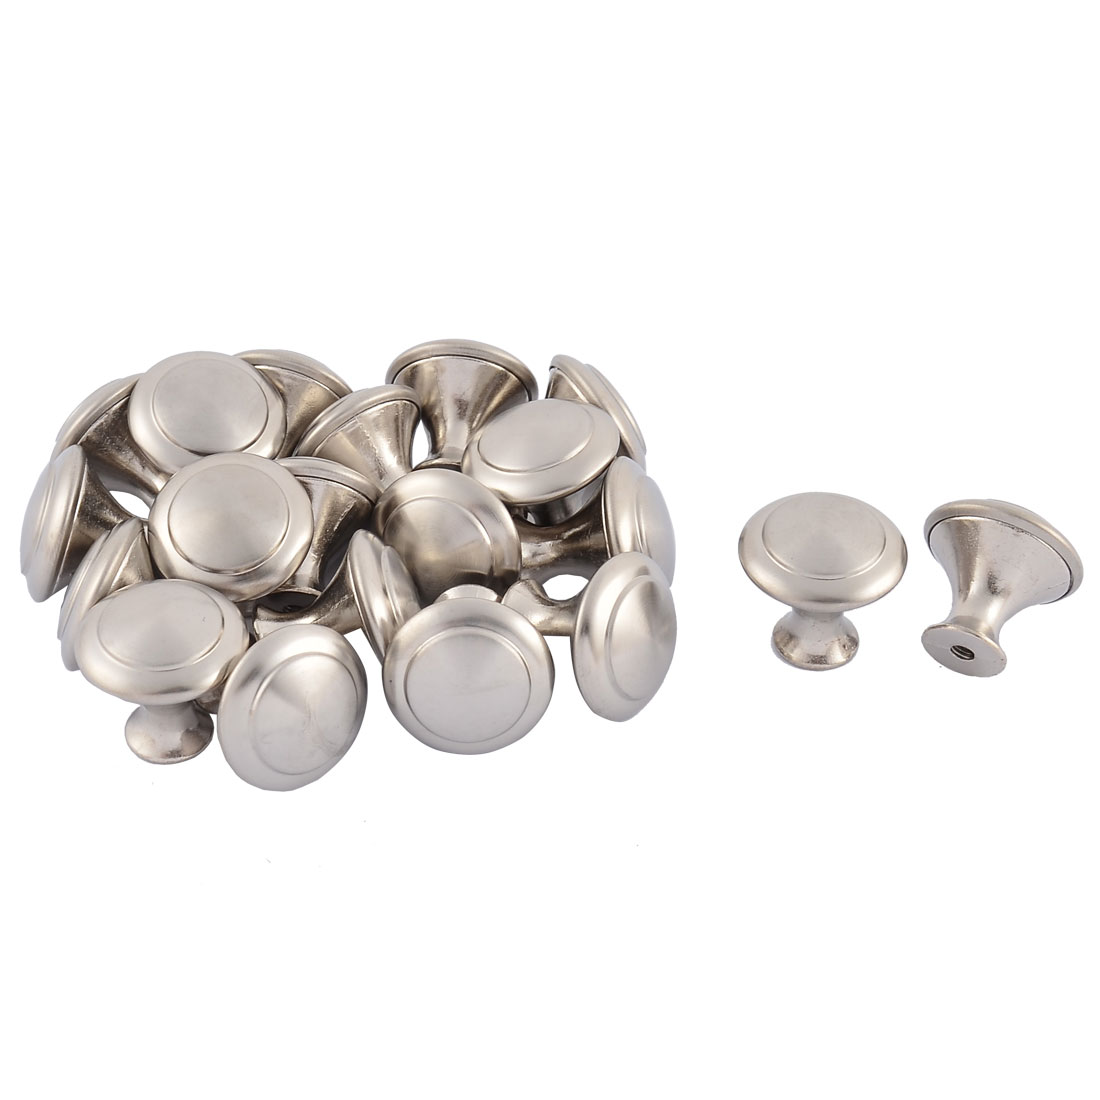 Furniture Cabinet Drawer Stainless Steel Pull Knob Handle Silver Tone 20 Pcs